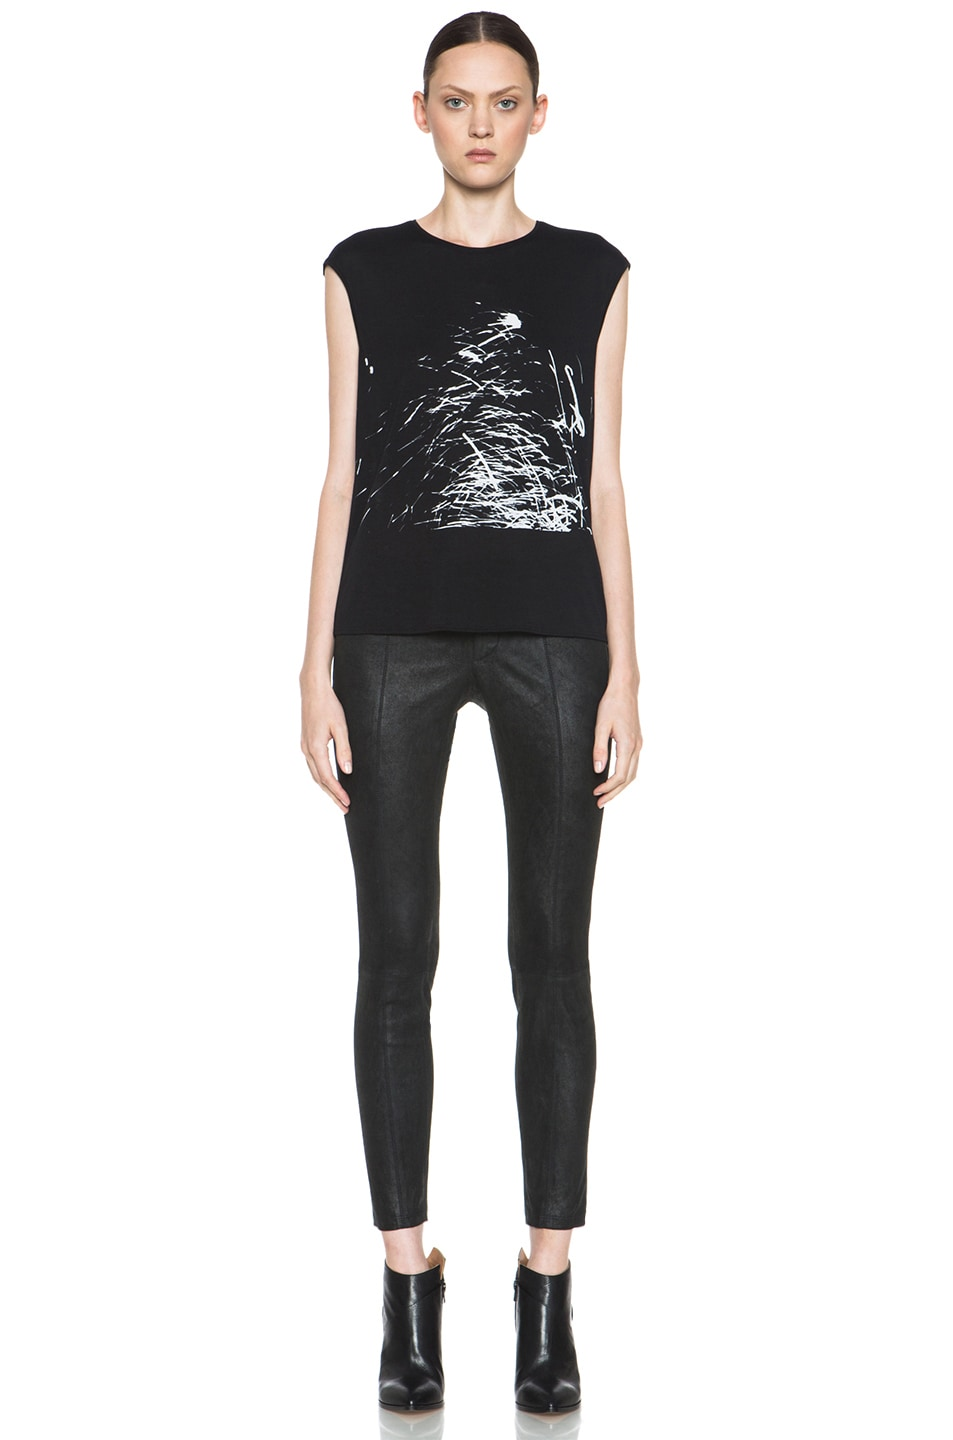 Image 5 of HELMUT Helmut Lang Spark Print Muscle Tee in Black